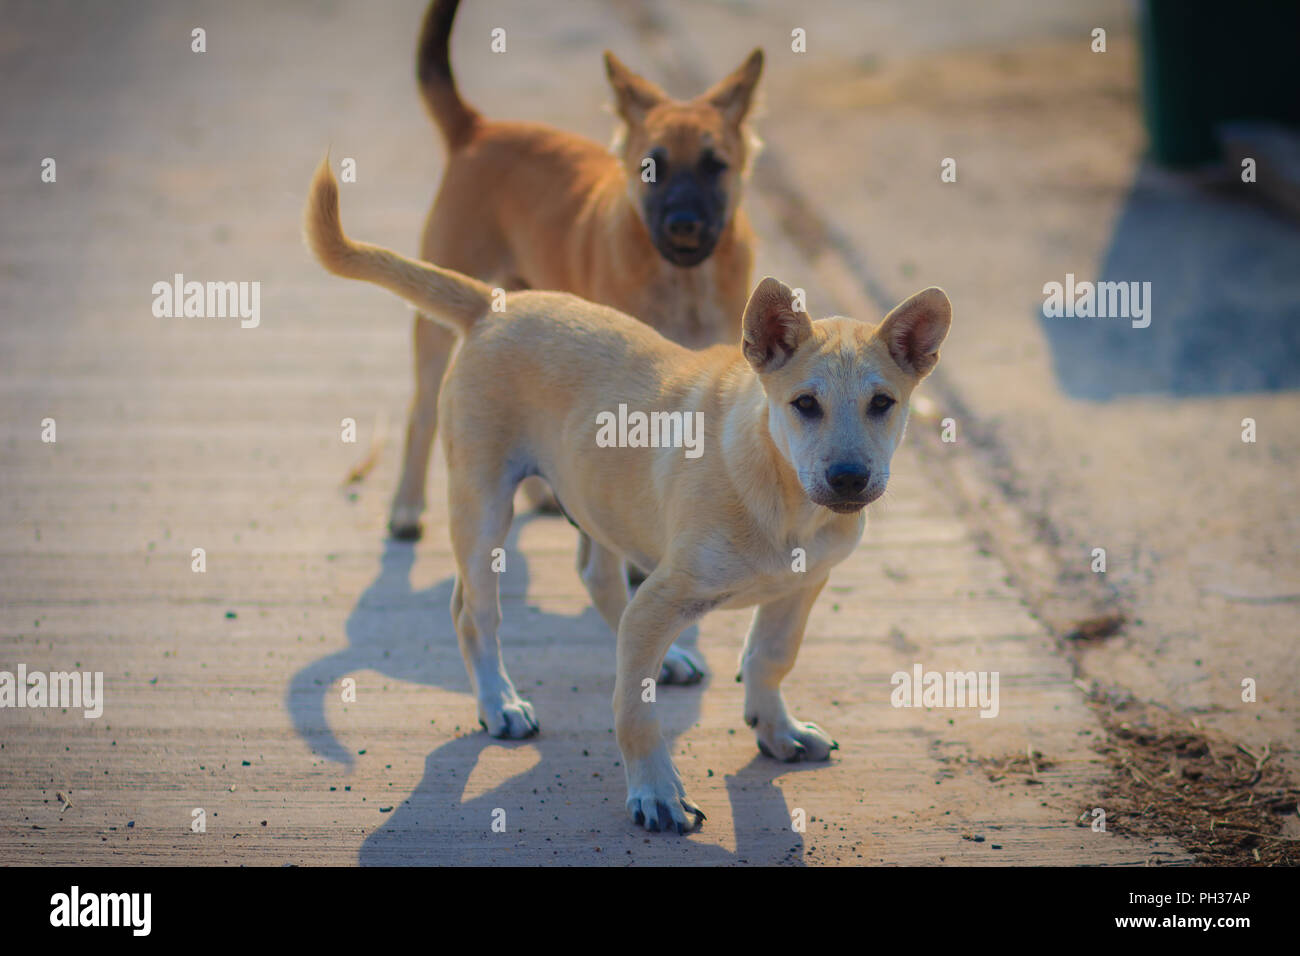 Young White And Brown Dogs Are Standing On Concrete Floor In The Morning And Barking To The Stranger Two Dogs And Their Shadows On The Floor In The P